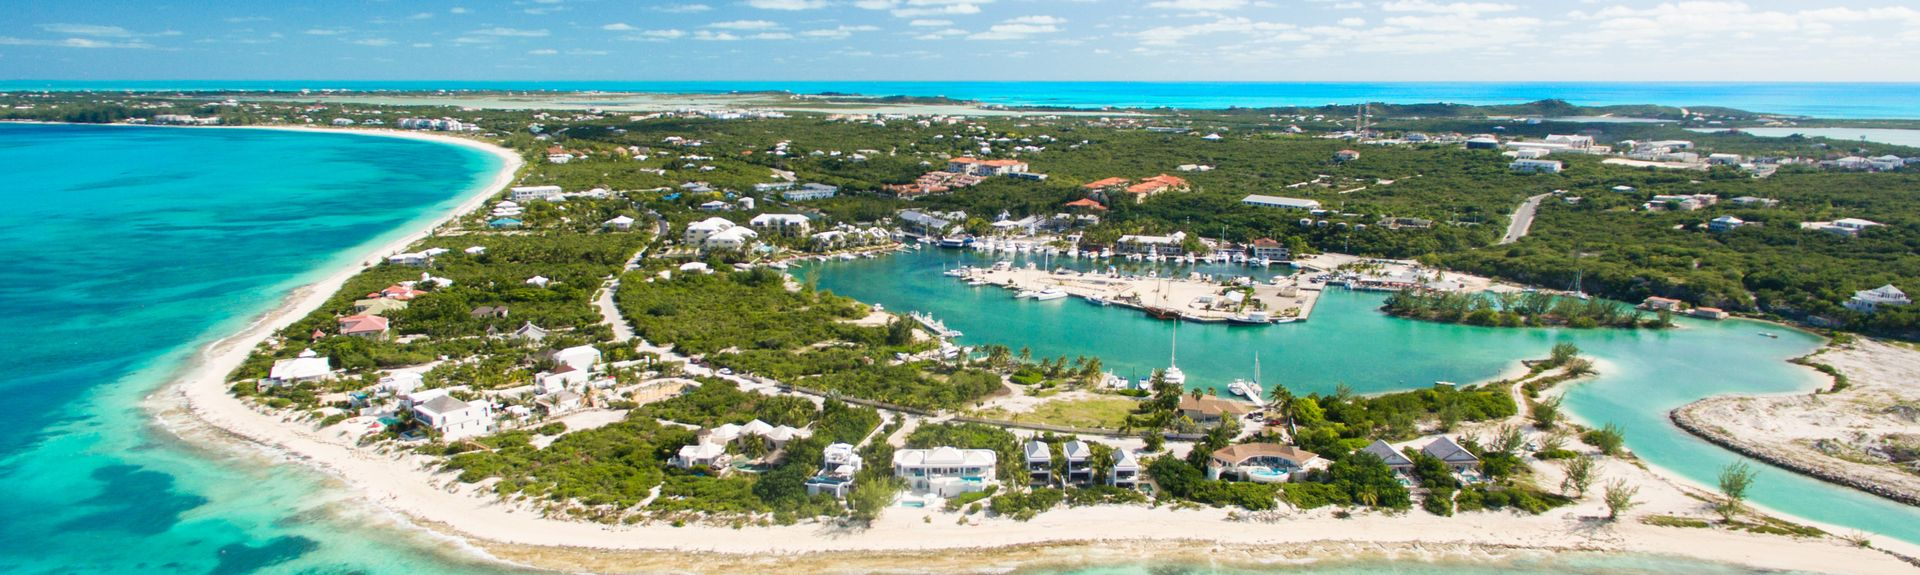 Turtle Tail, Providenciales, Turks and Caicos Islands